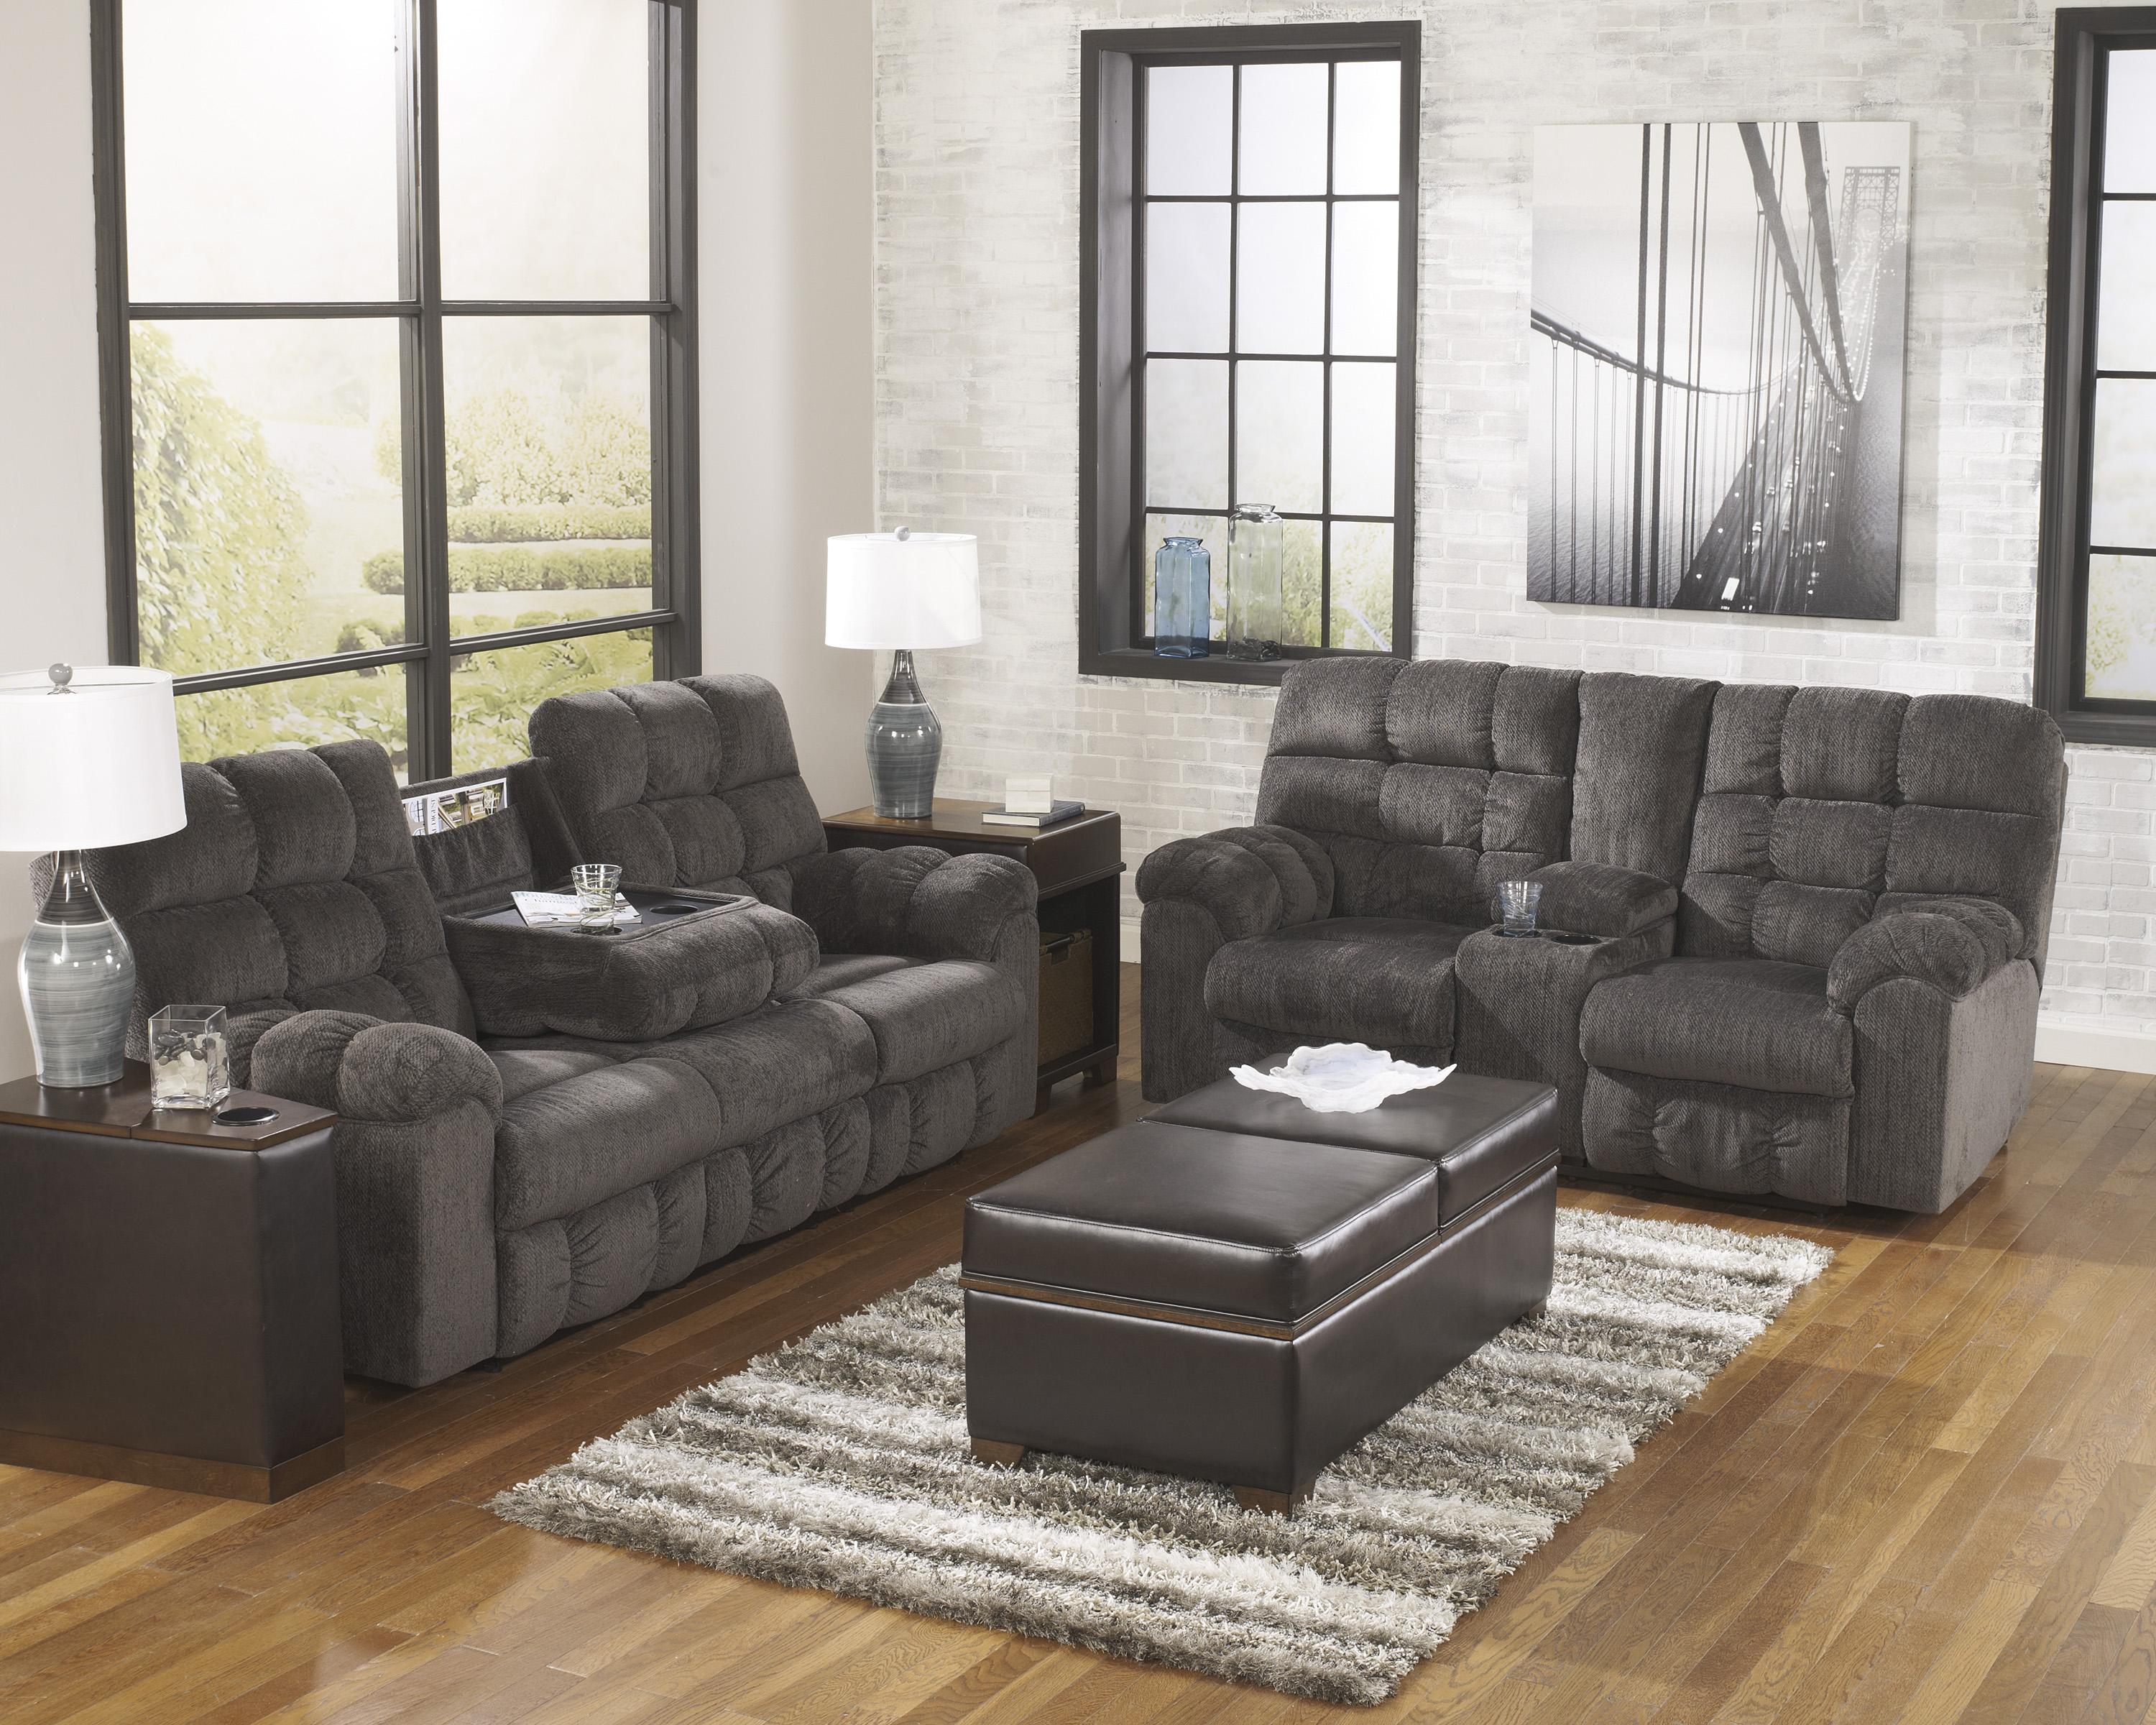 Acieona Slate Reclining Sofa With Drop Down Table and Reclining Loveseat With Console  / $35.99 A Week